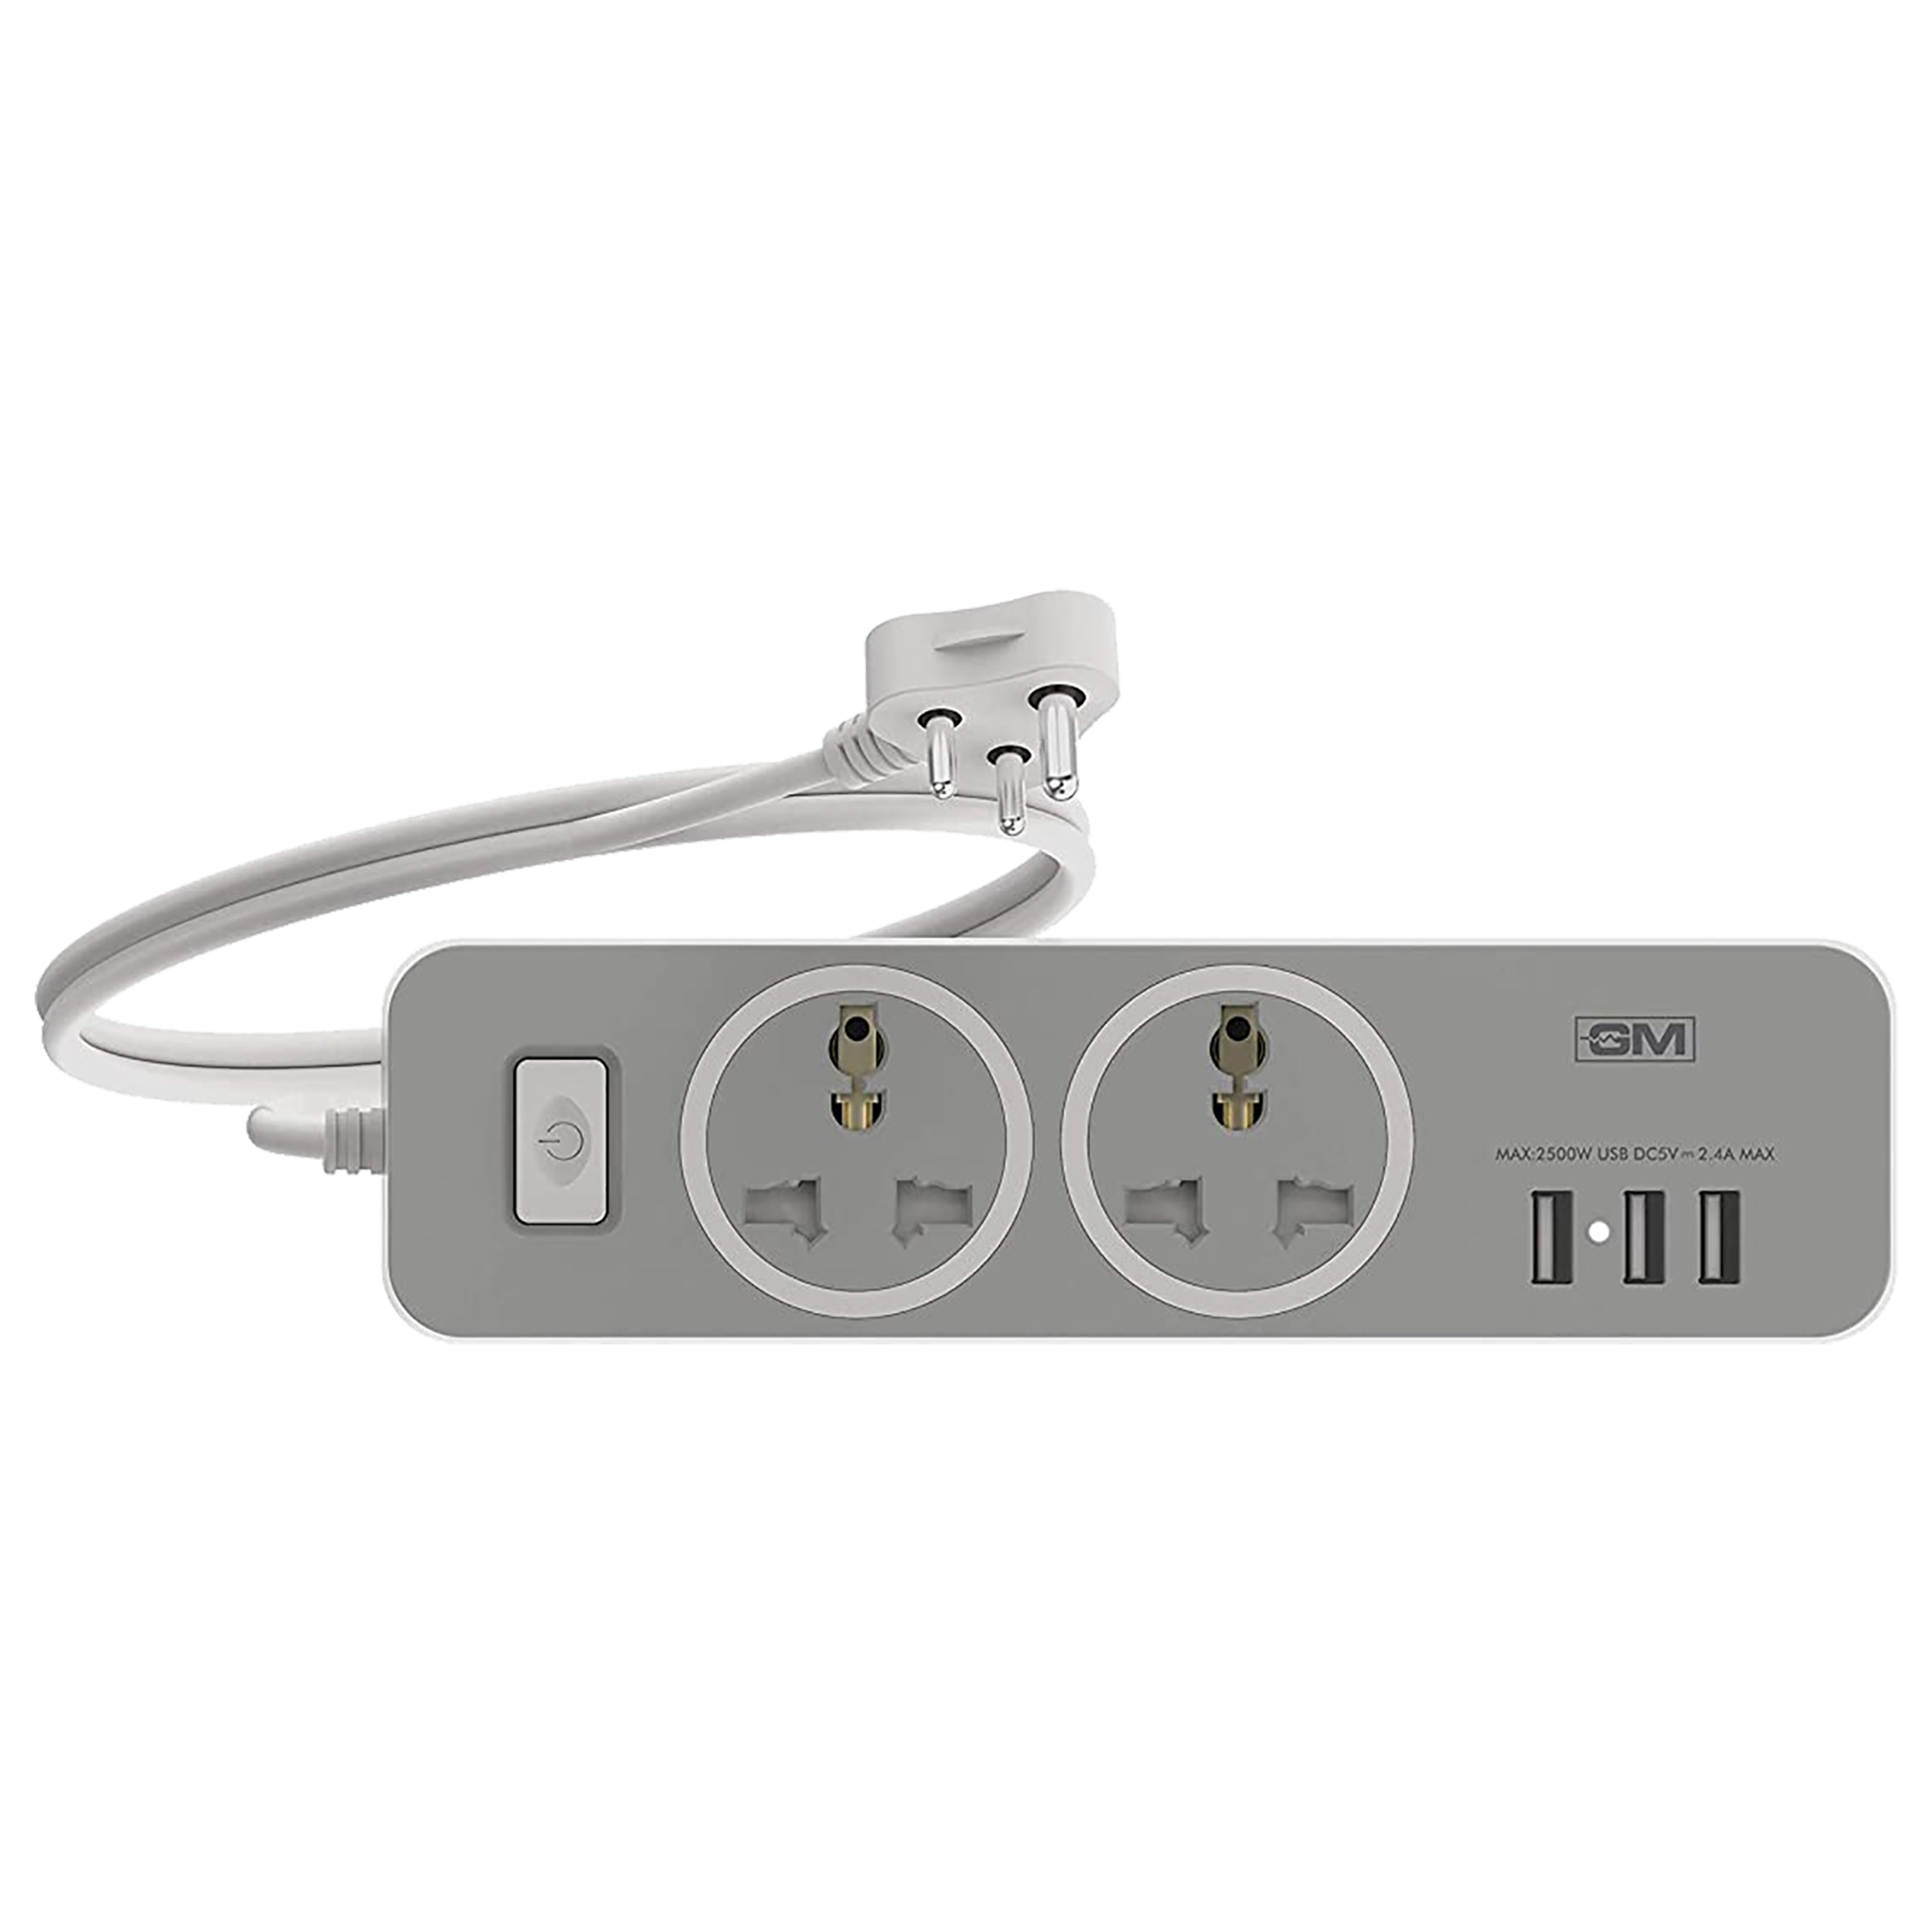 GM Cuba 2 Sockets Extension Board 2 Meters (LED Indicator, GM 3262, White/Grey)_1